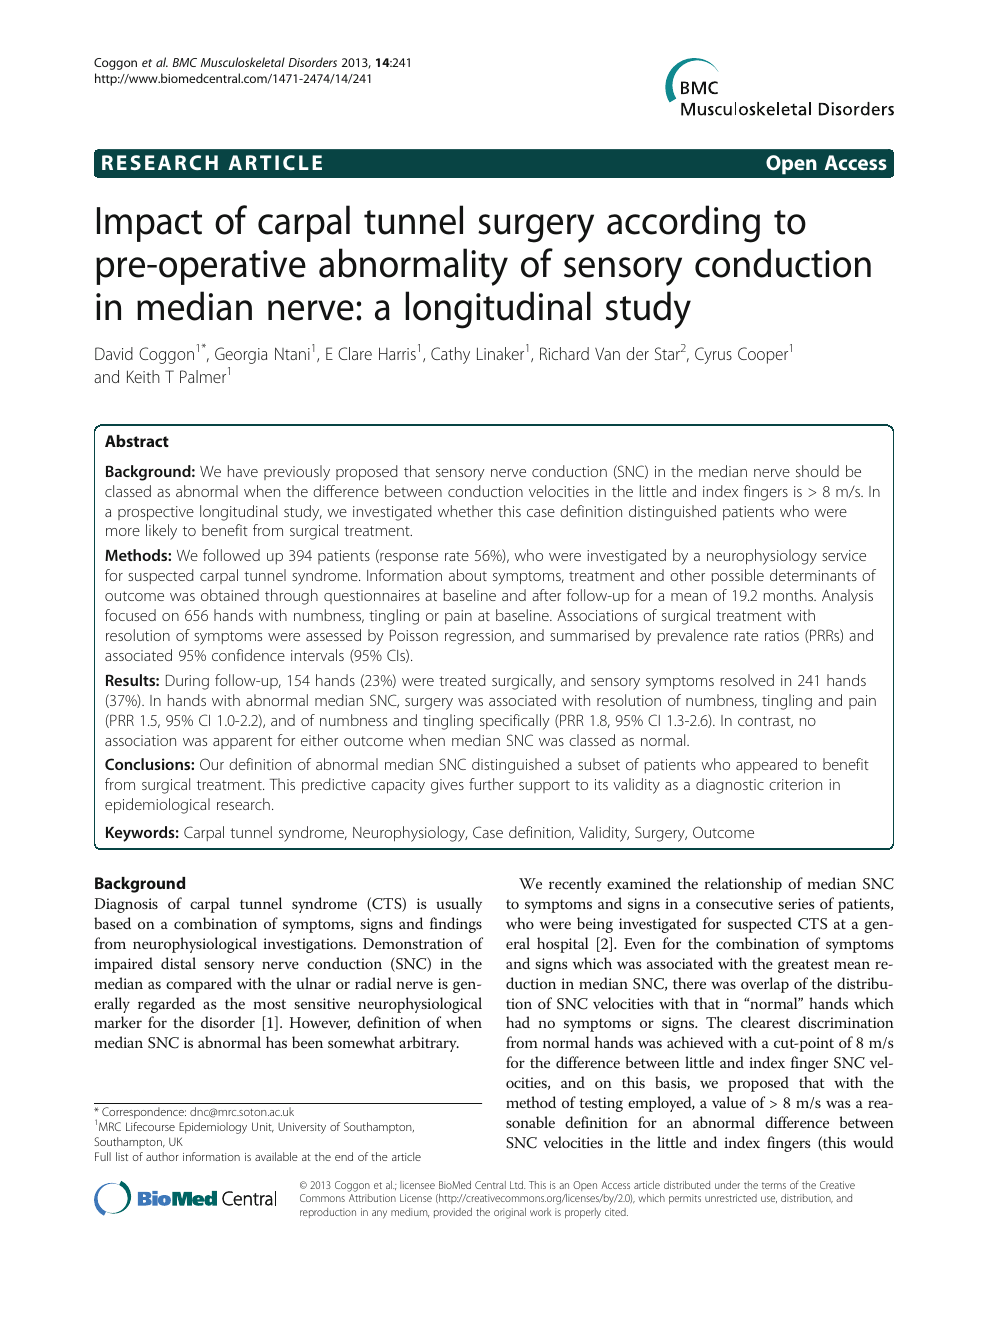 Impact Of Carpal Tunnel Surgery According To Pre Operative